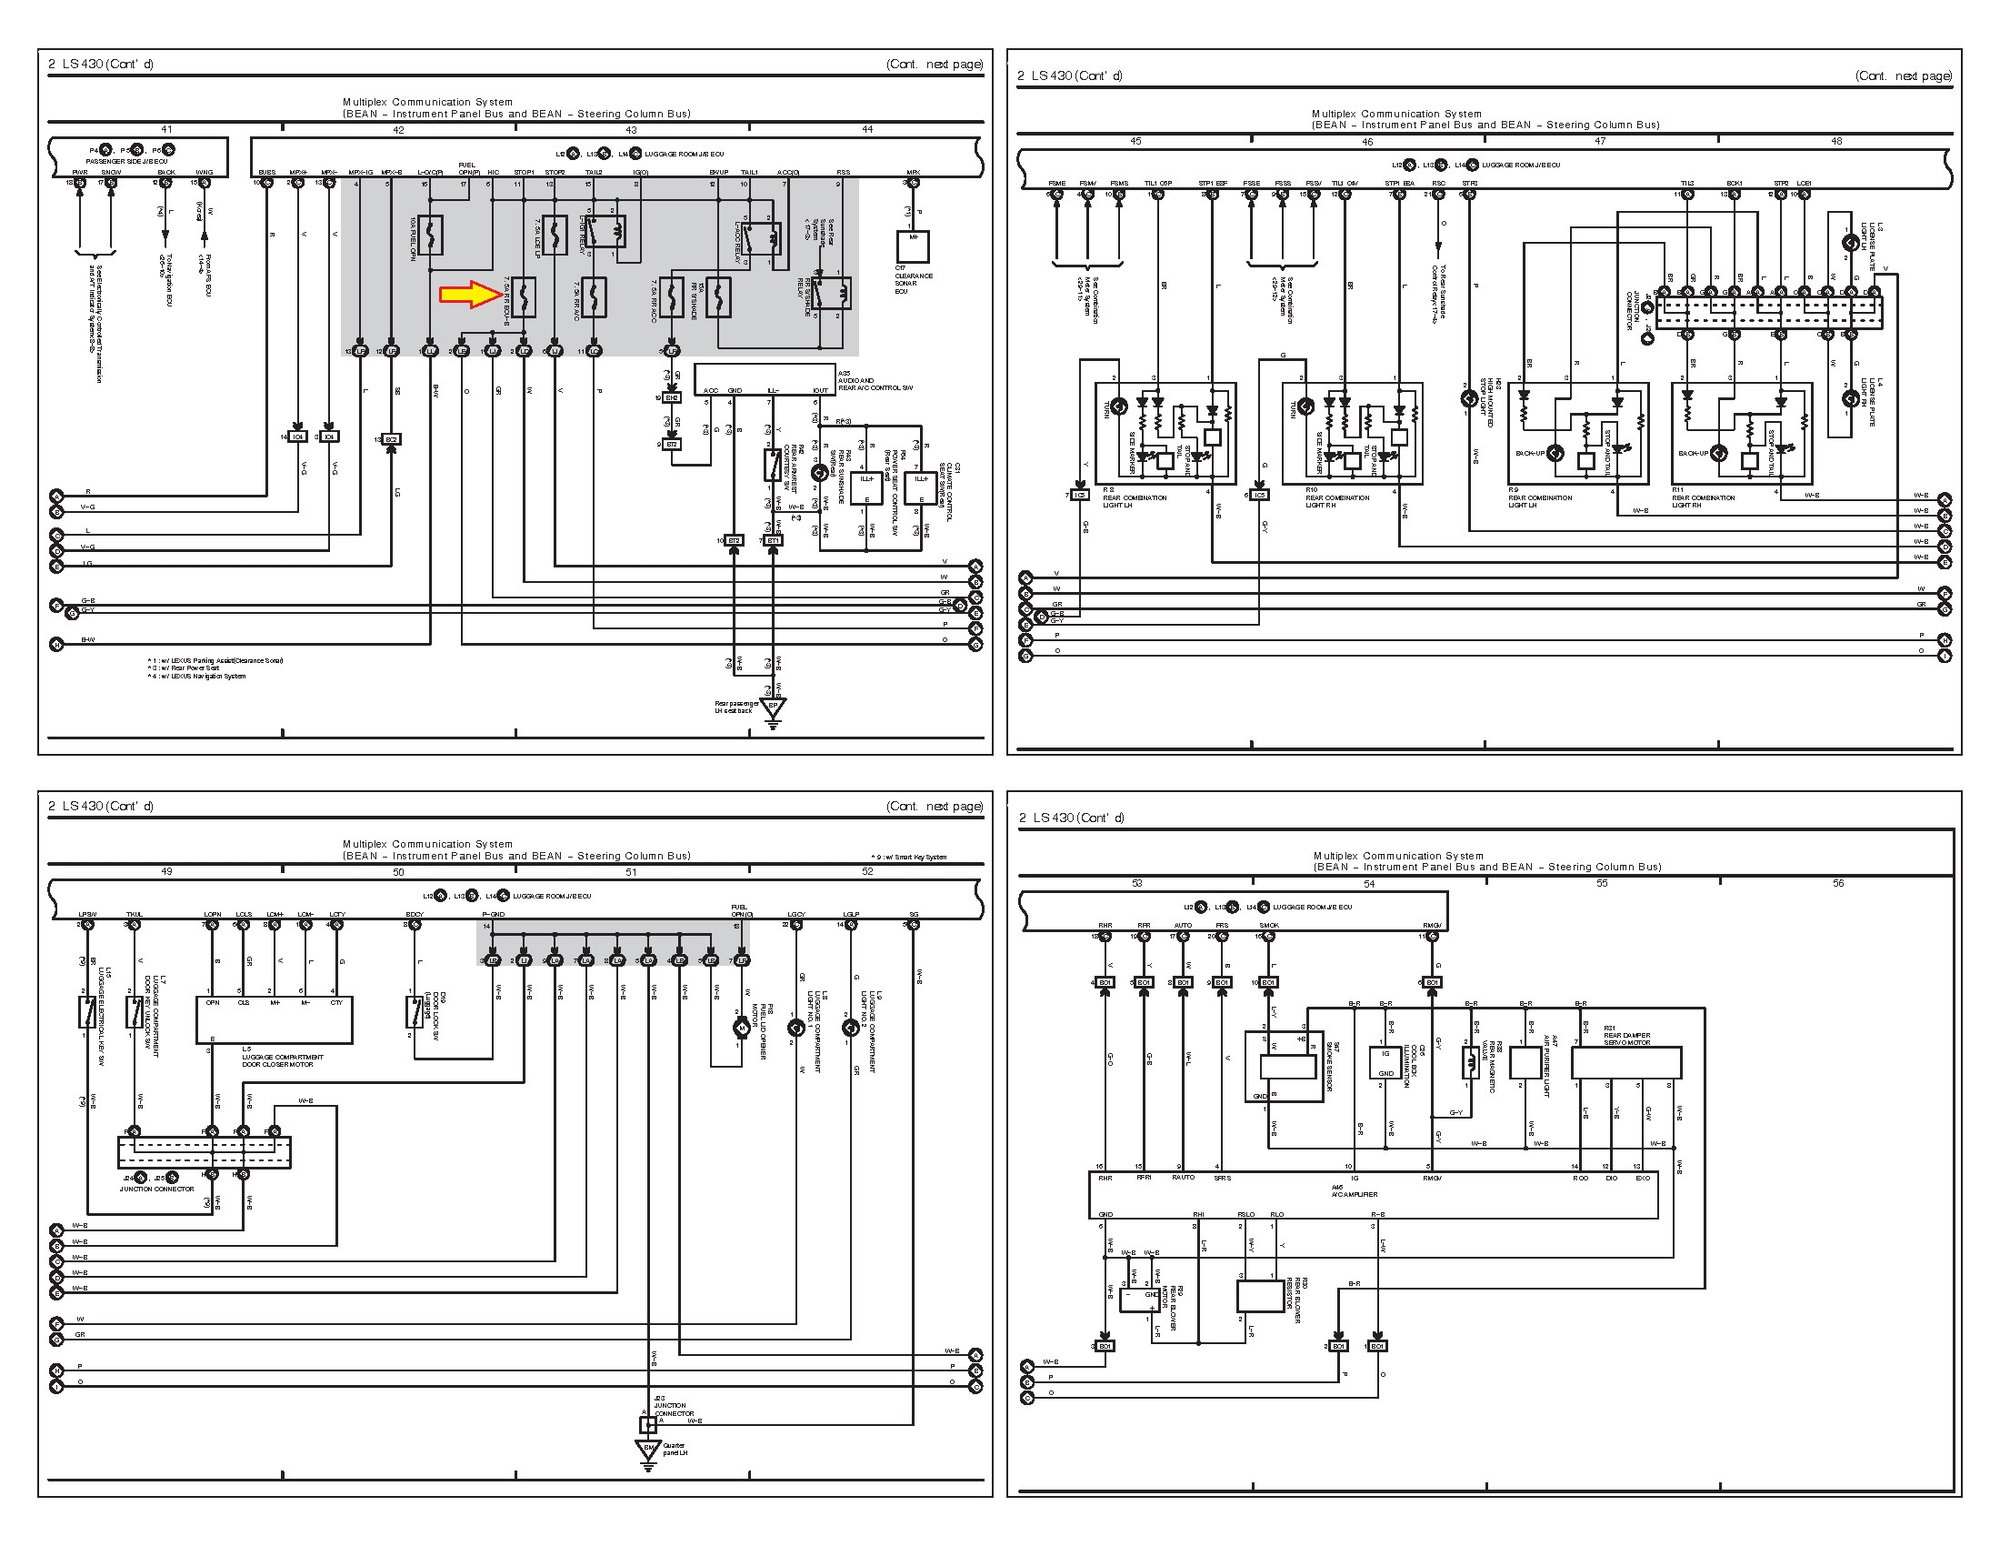 hight resolution of here s the electrical schematic that shows circuitry downstream of 7 5 a rr ecu b i have also attached the pdf if the schematic below is not legible